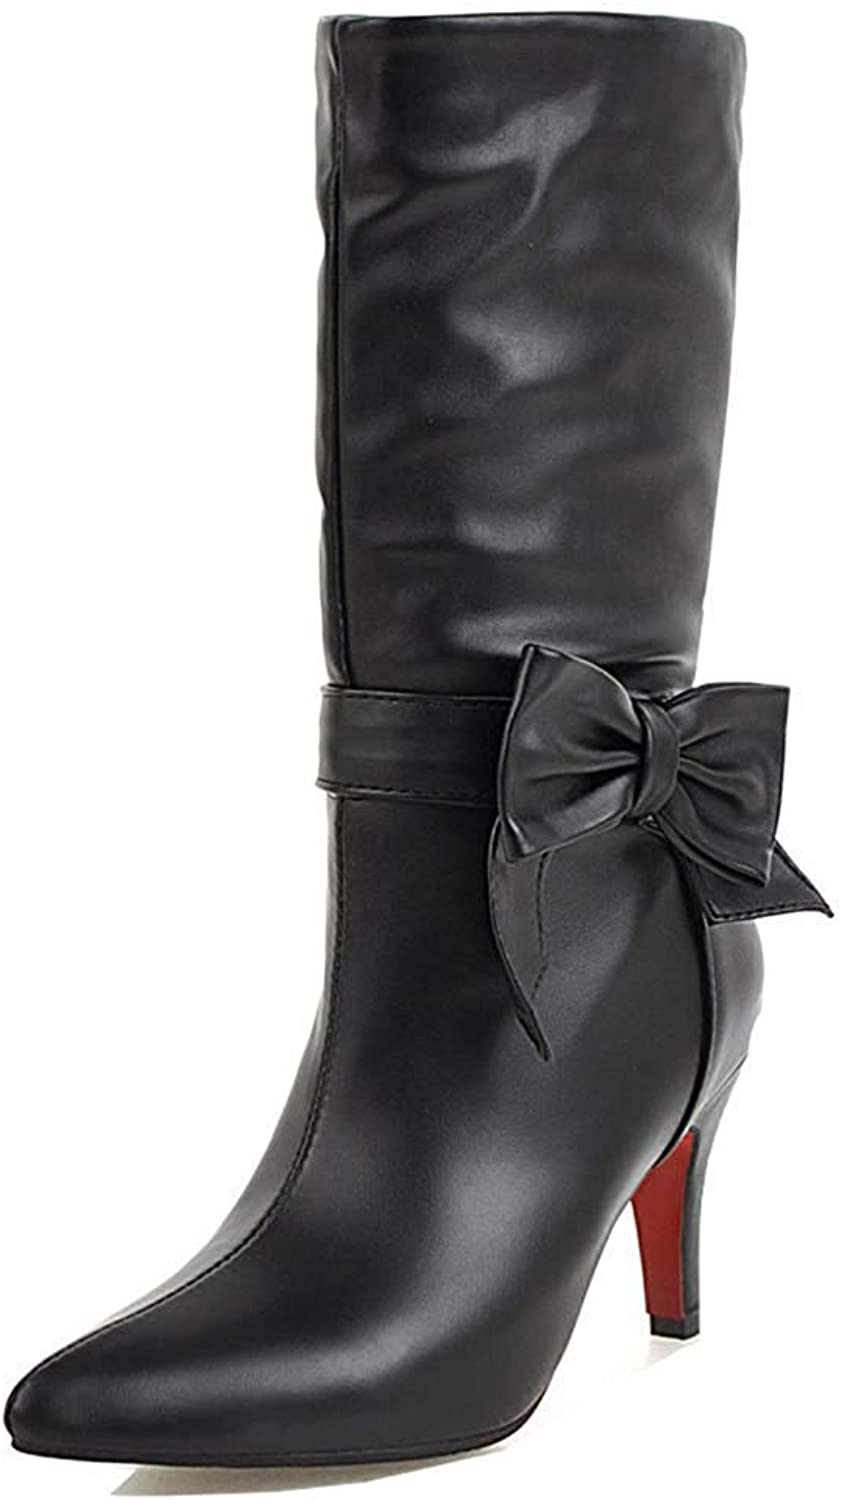 Unm Women's Cute Pointed Toe Pull On Dressy Party Bridal Stiletto High Heel Mid Calf Boots with Bows